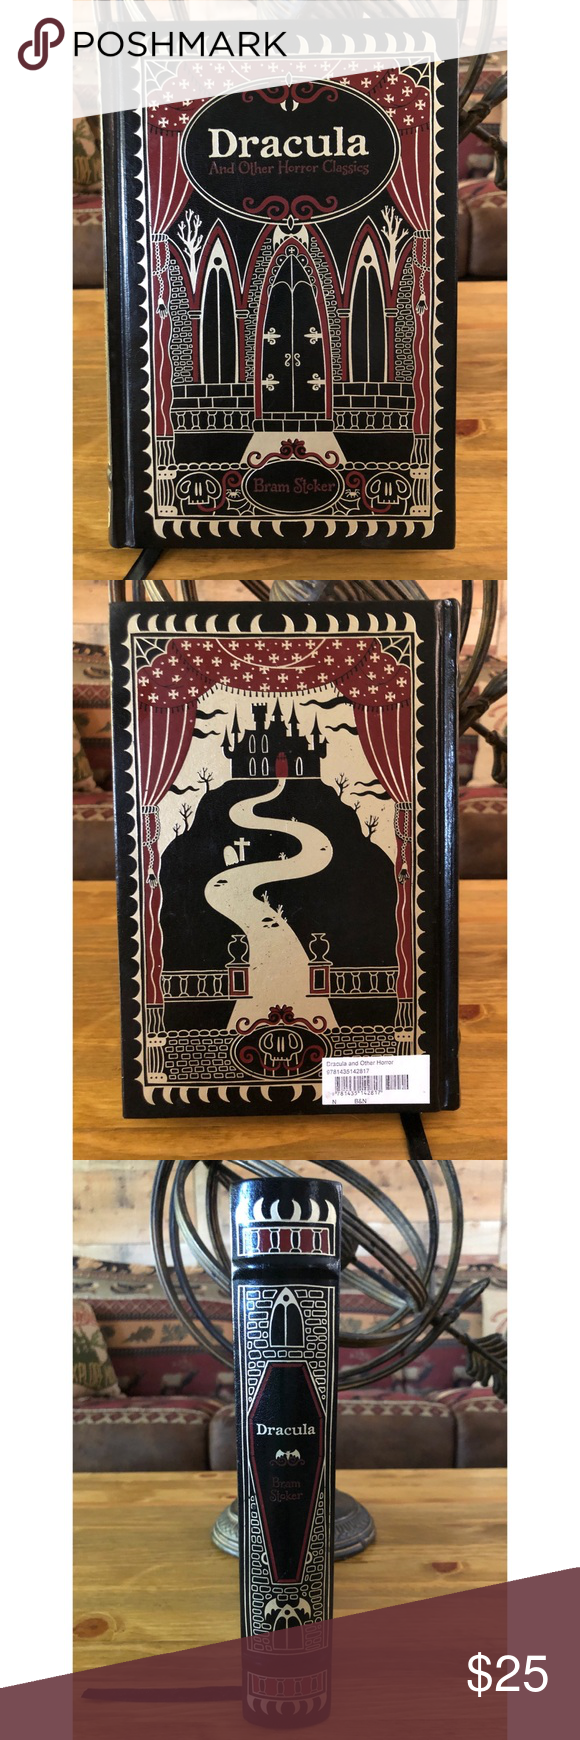 Dracula And Other Horror Classics By Bram Stoker This Book Is Hardback Great Pre Owned Condition This Book Consists Of Dracula Th Horror Dracula White Worms